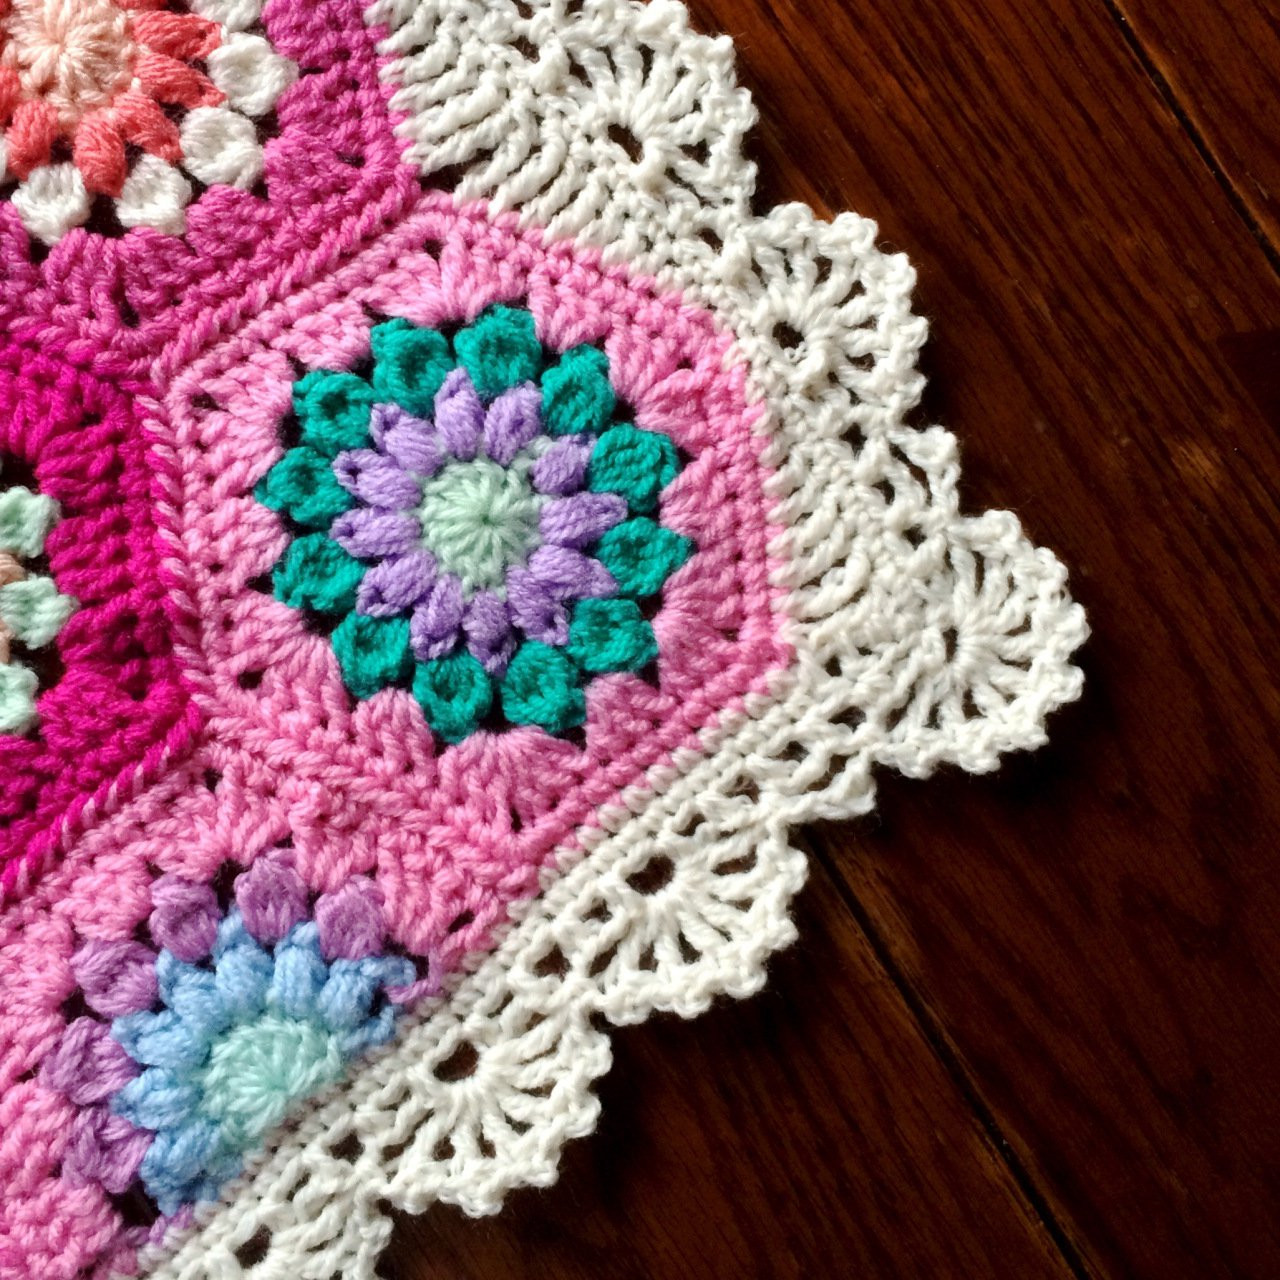 Luxury 20 Crochet Free Edging Patterns You Should Know Crochet Edging for Baby Blanket Patterns Of New 43 Pics Crochet Edging for Baby Blanket Patterns